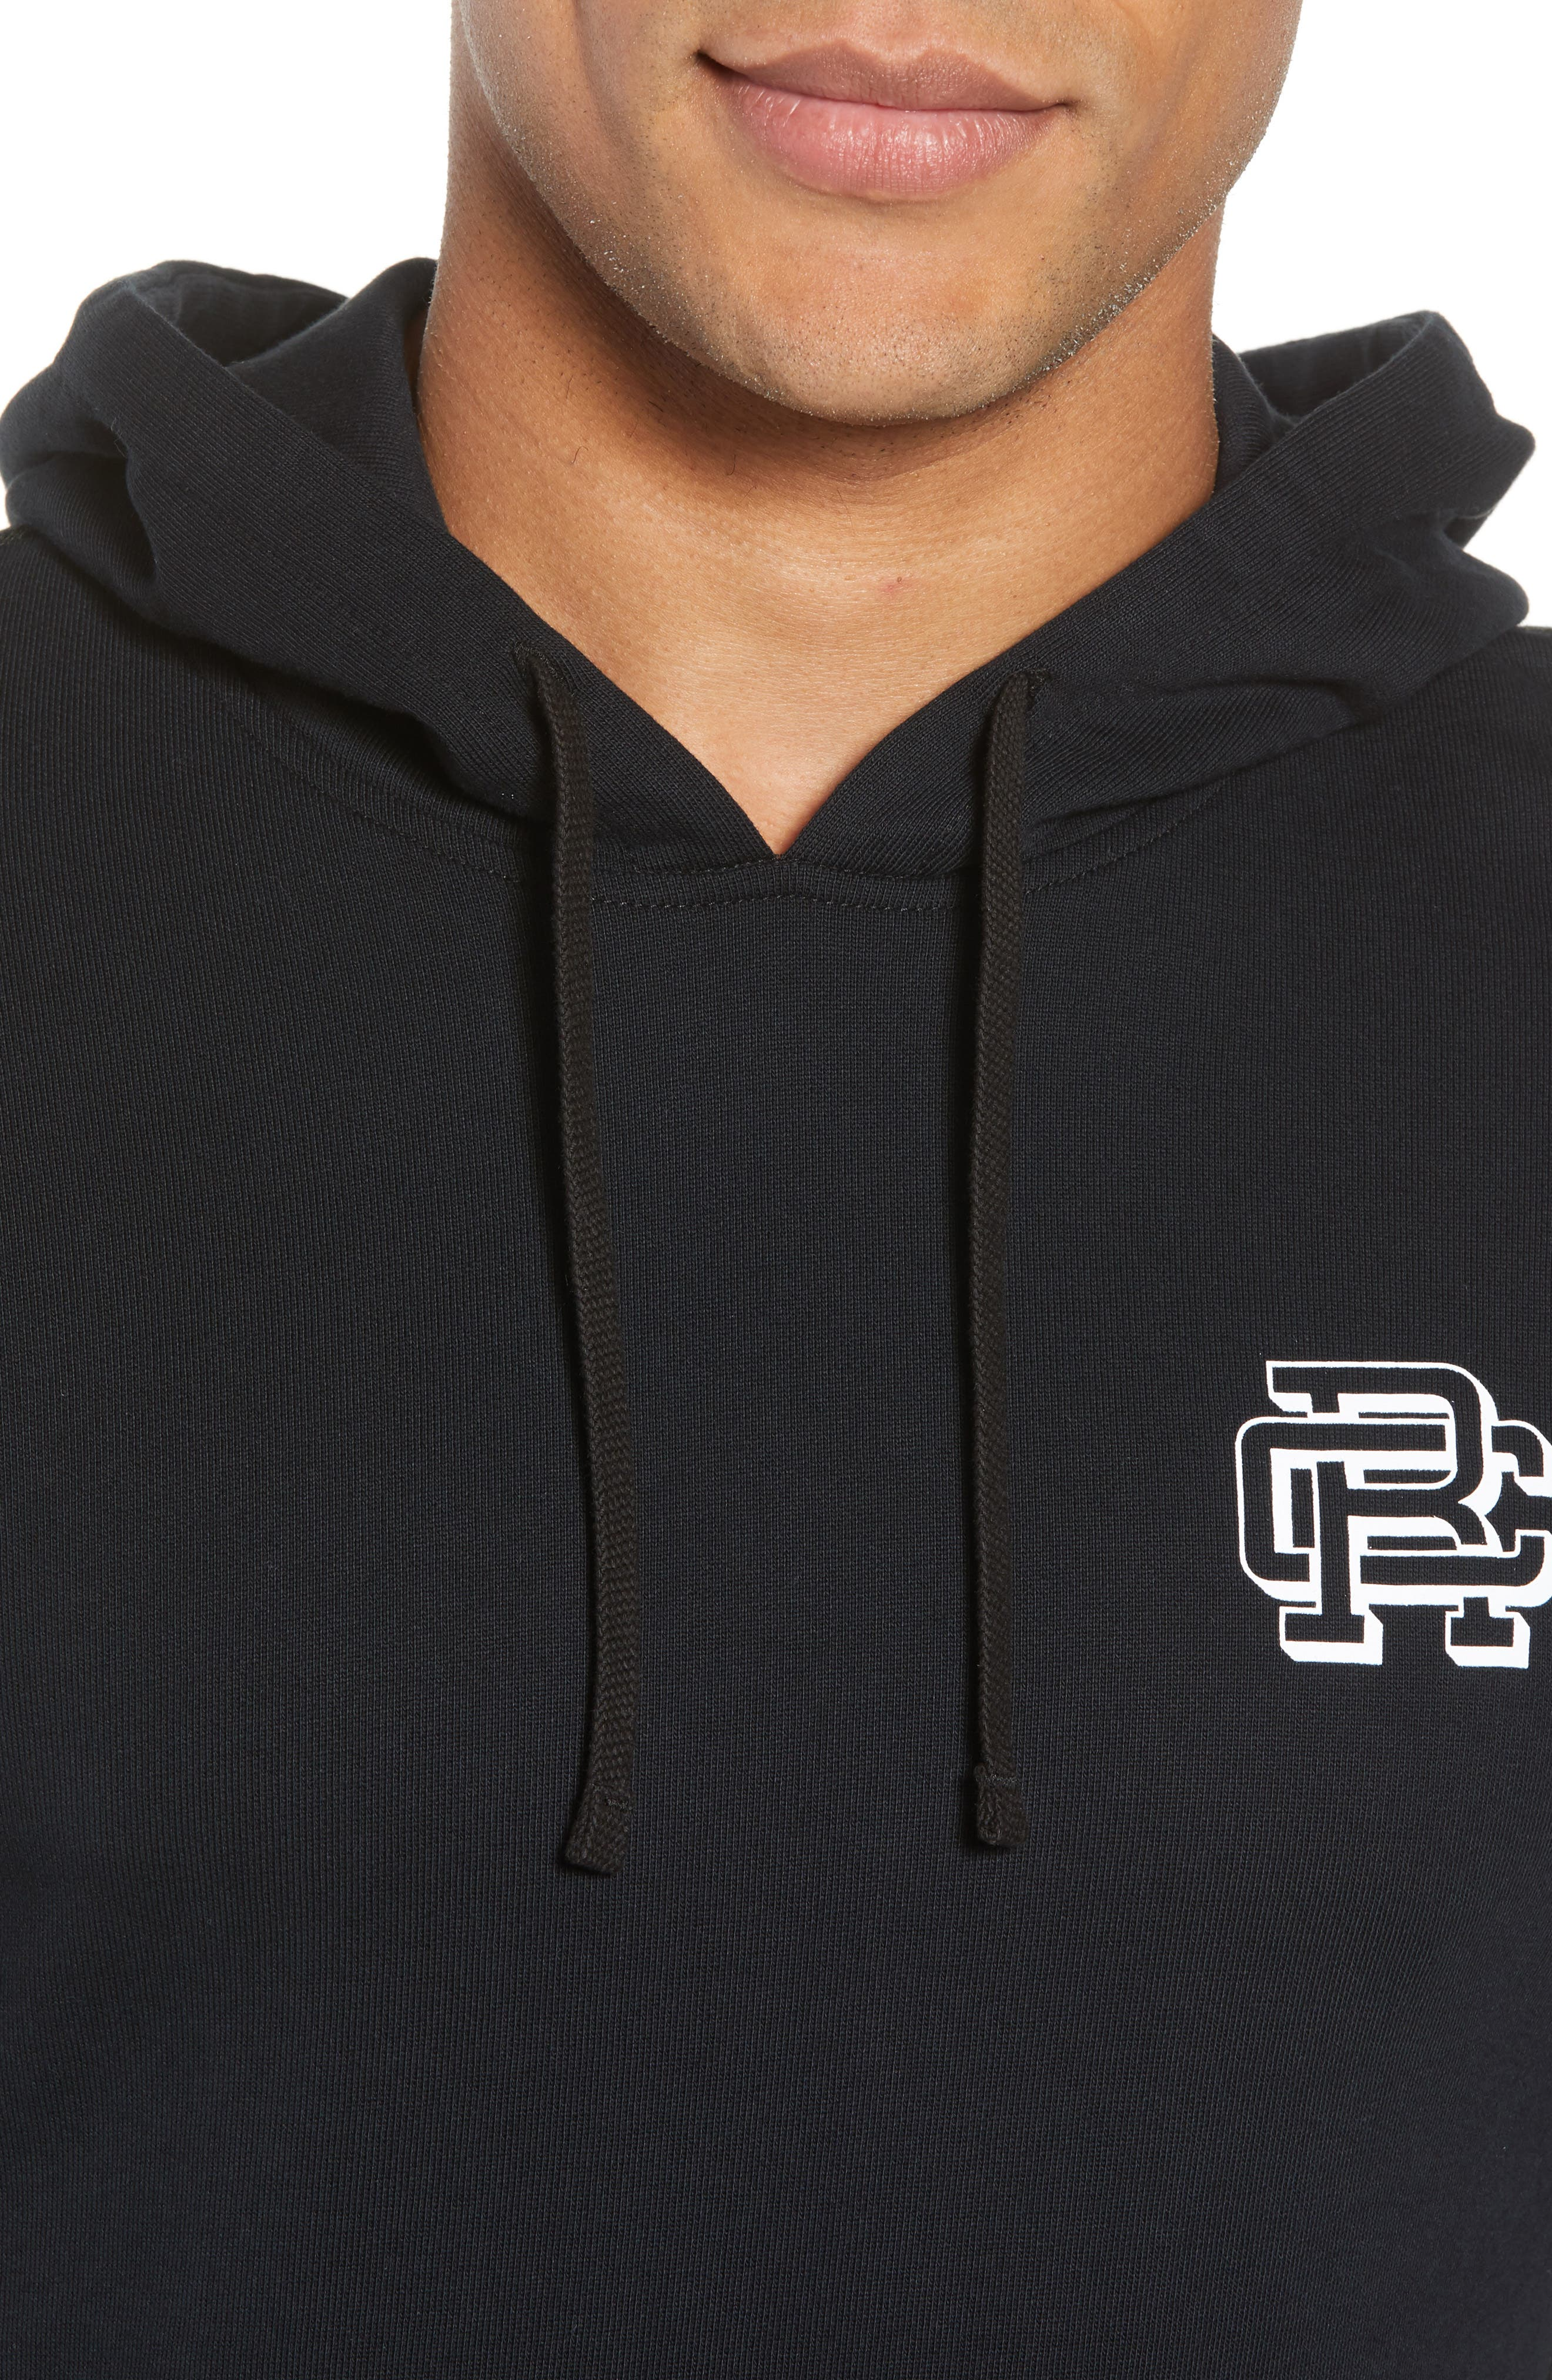 Classic Fit Hooded Pullover,                             Alternate thumbnail 4, color,                             BLACK